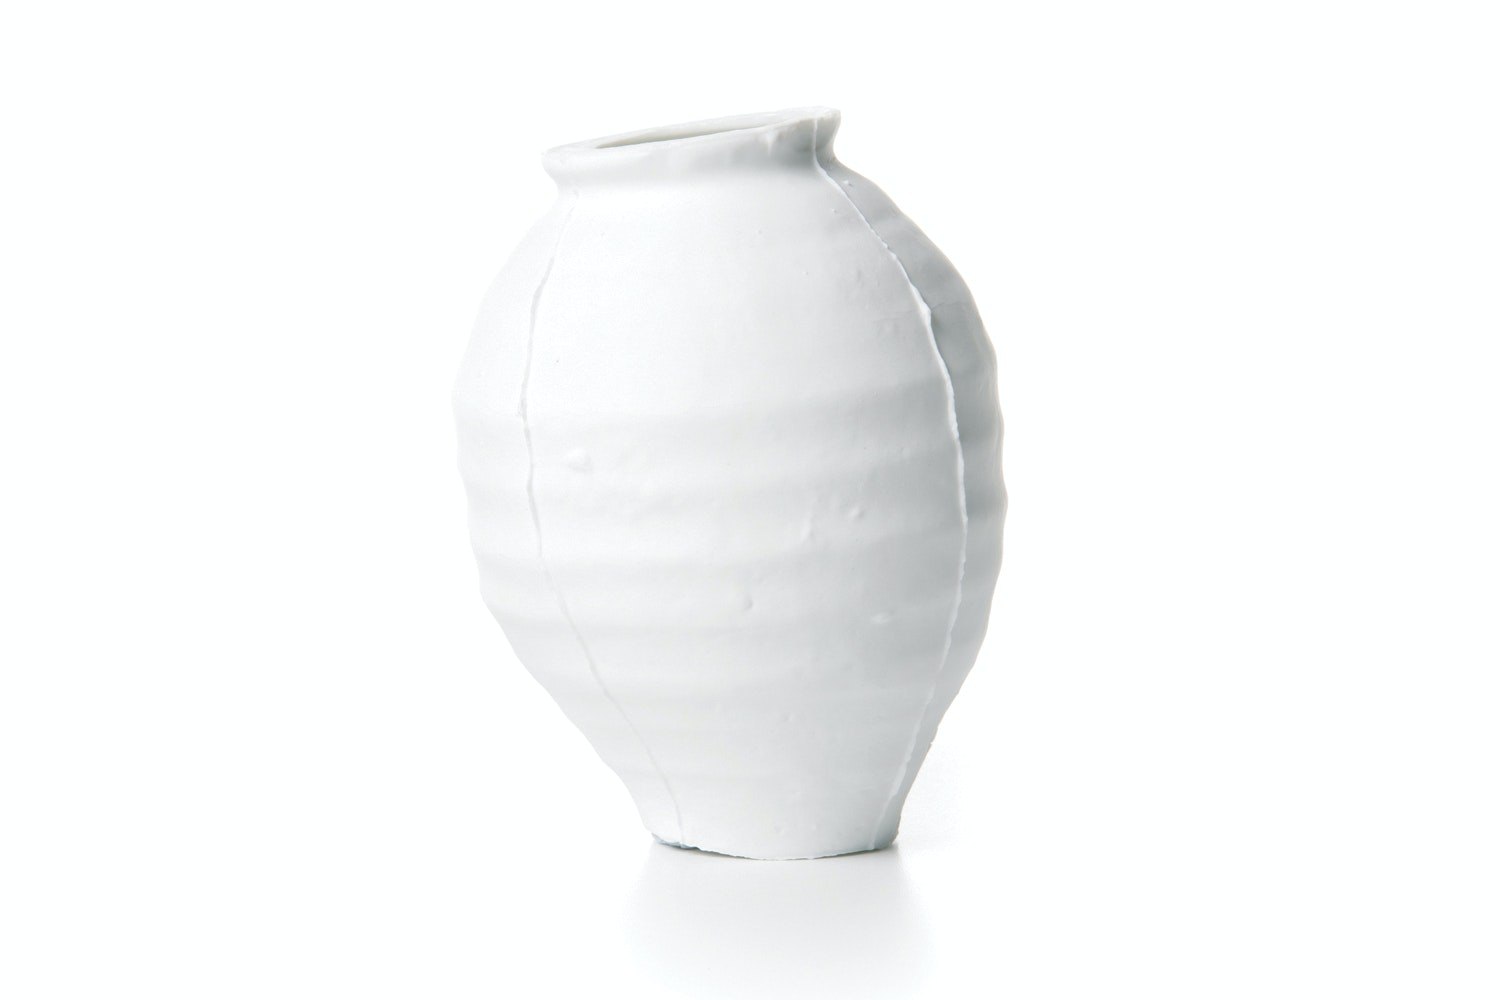 Ming Vase by Marcel Wanders for Moooi